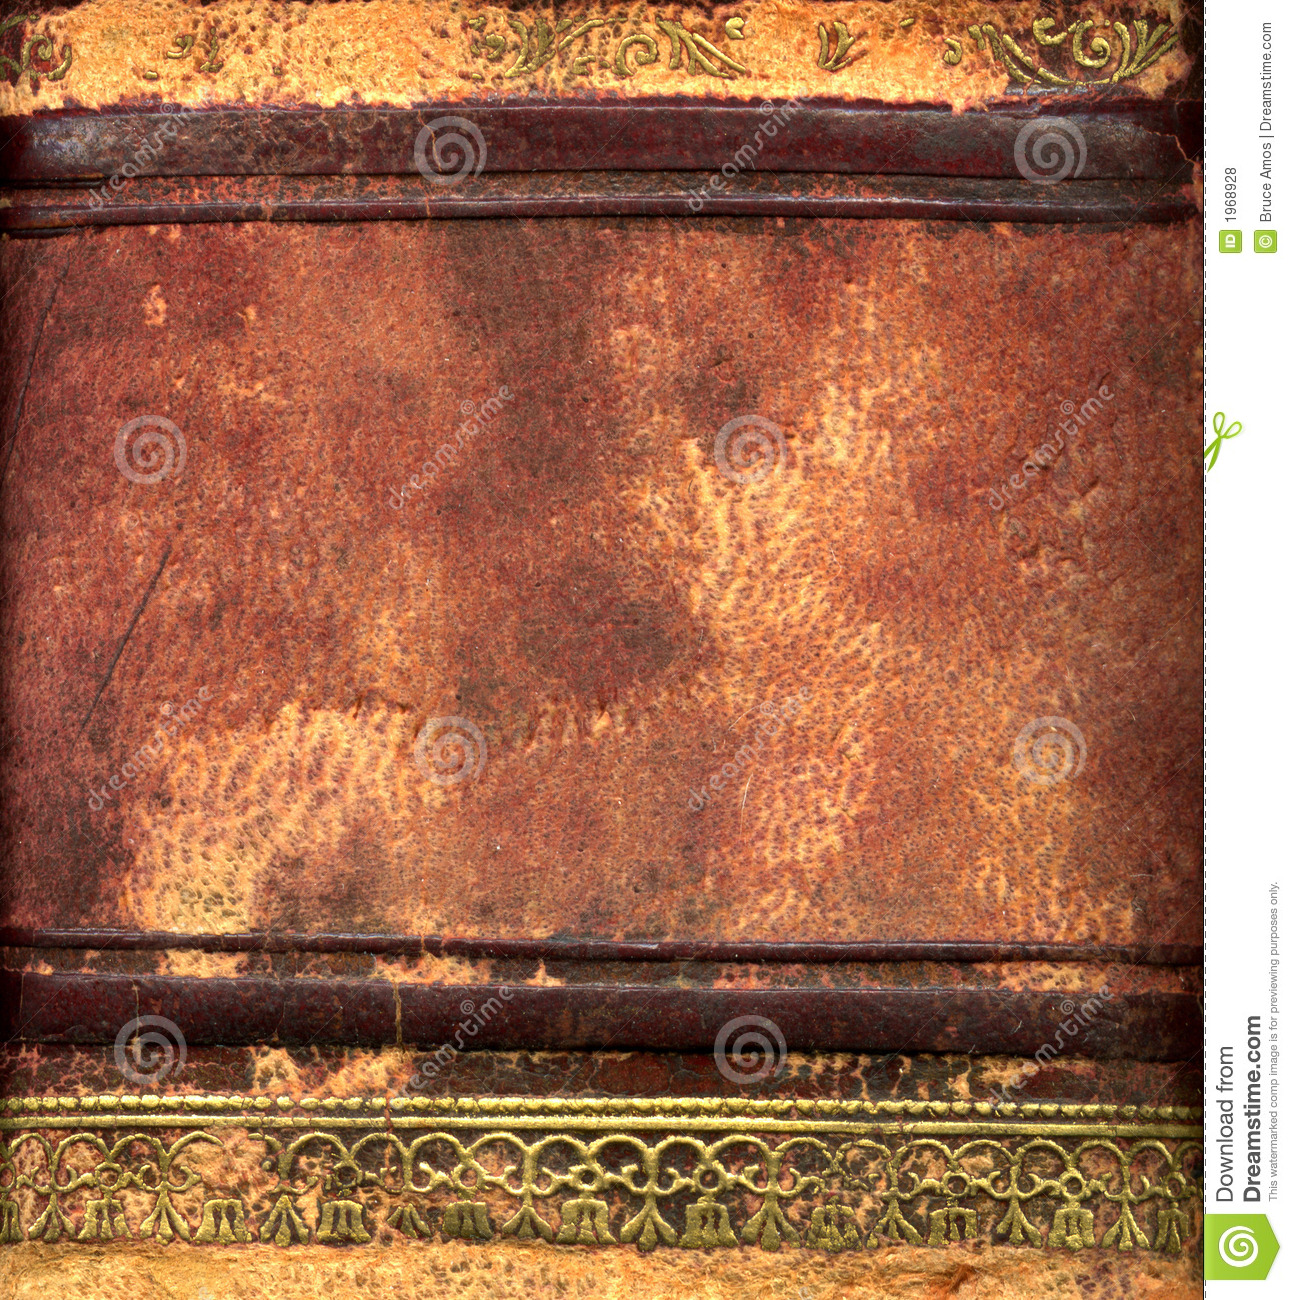 Leather Bound Book Detail Royalty Free Stock Photos